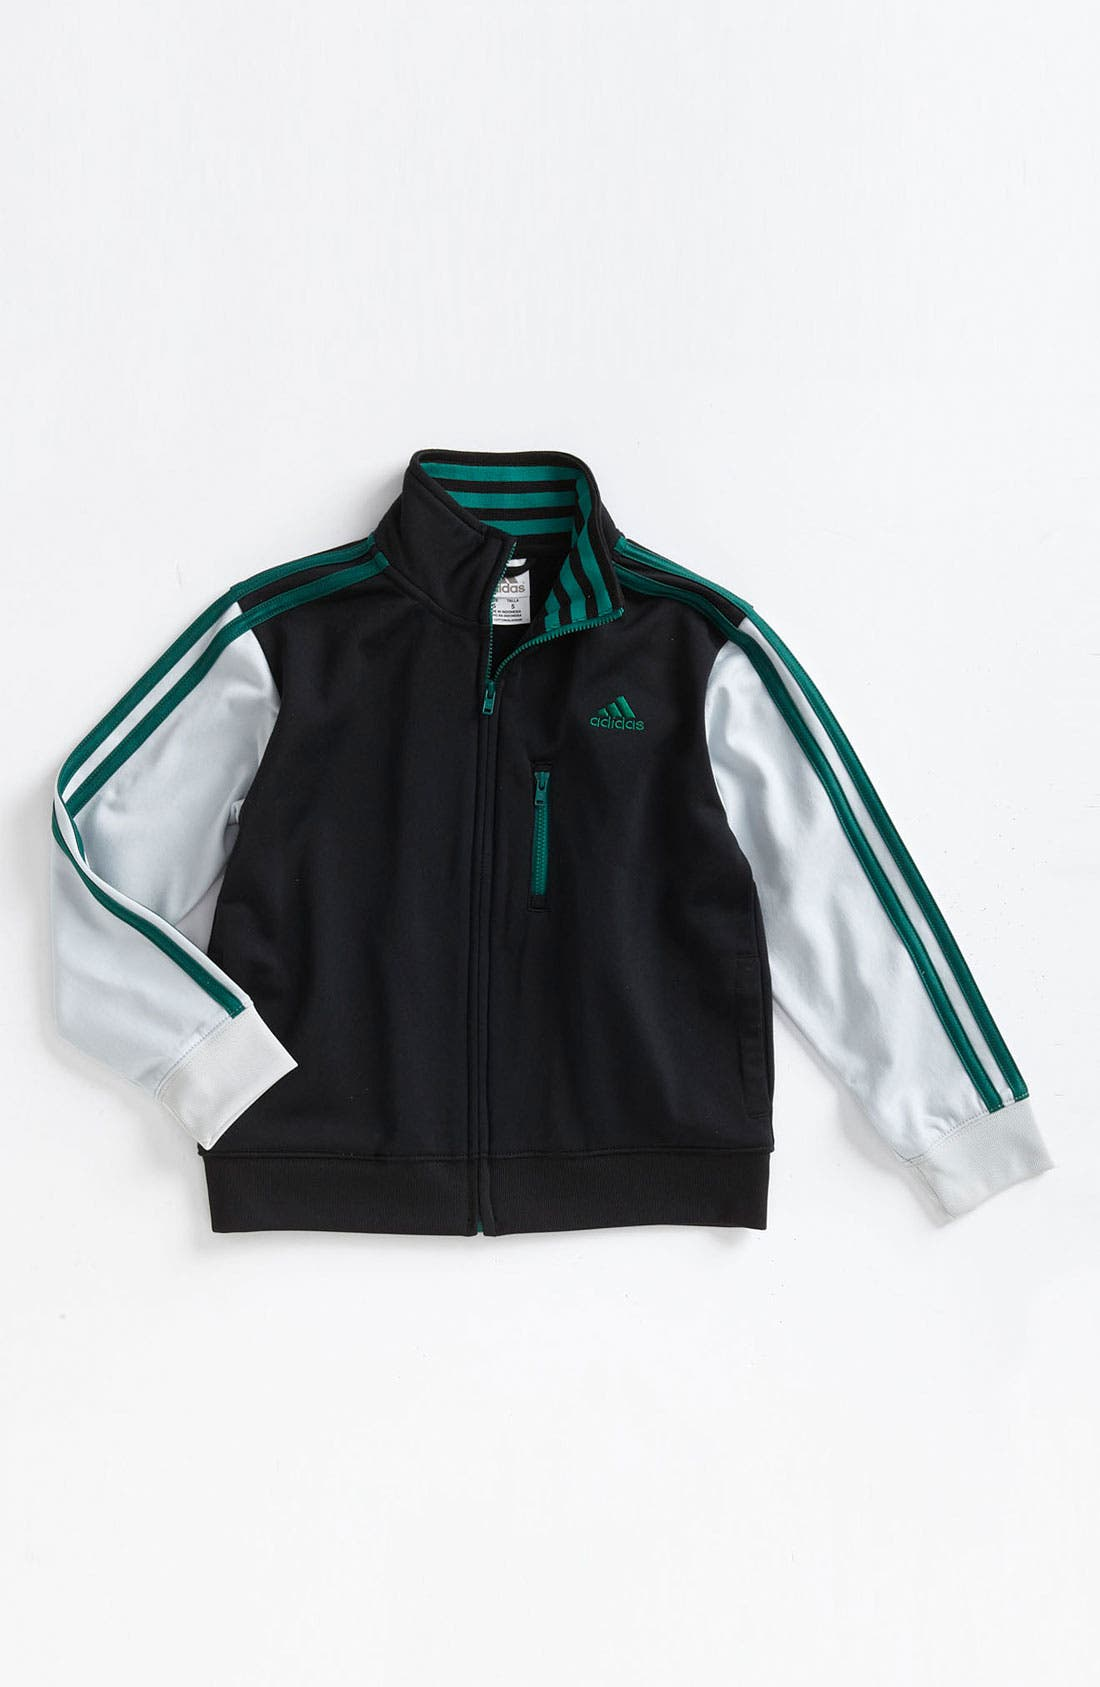 Alternate Image 1 Selected - adidas 'Varsity' Jacket (Little Boys)